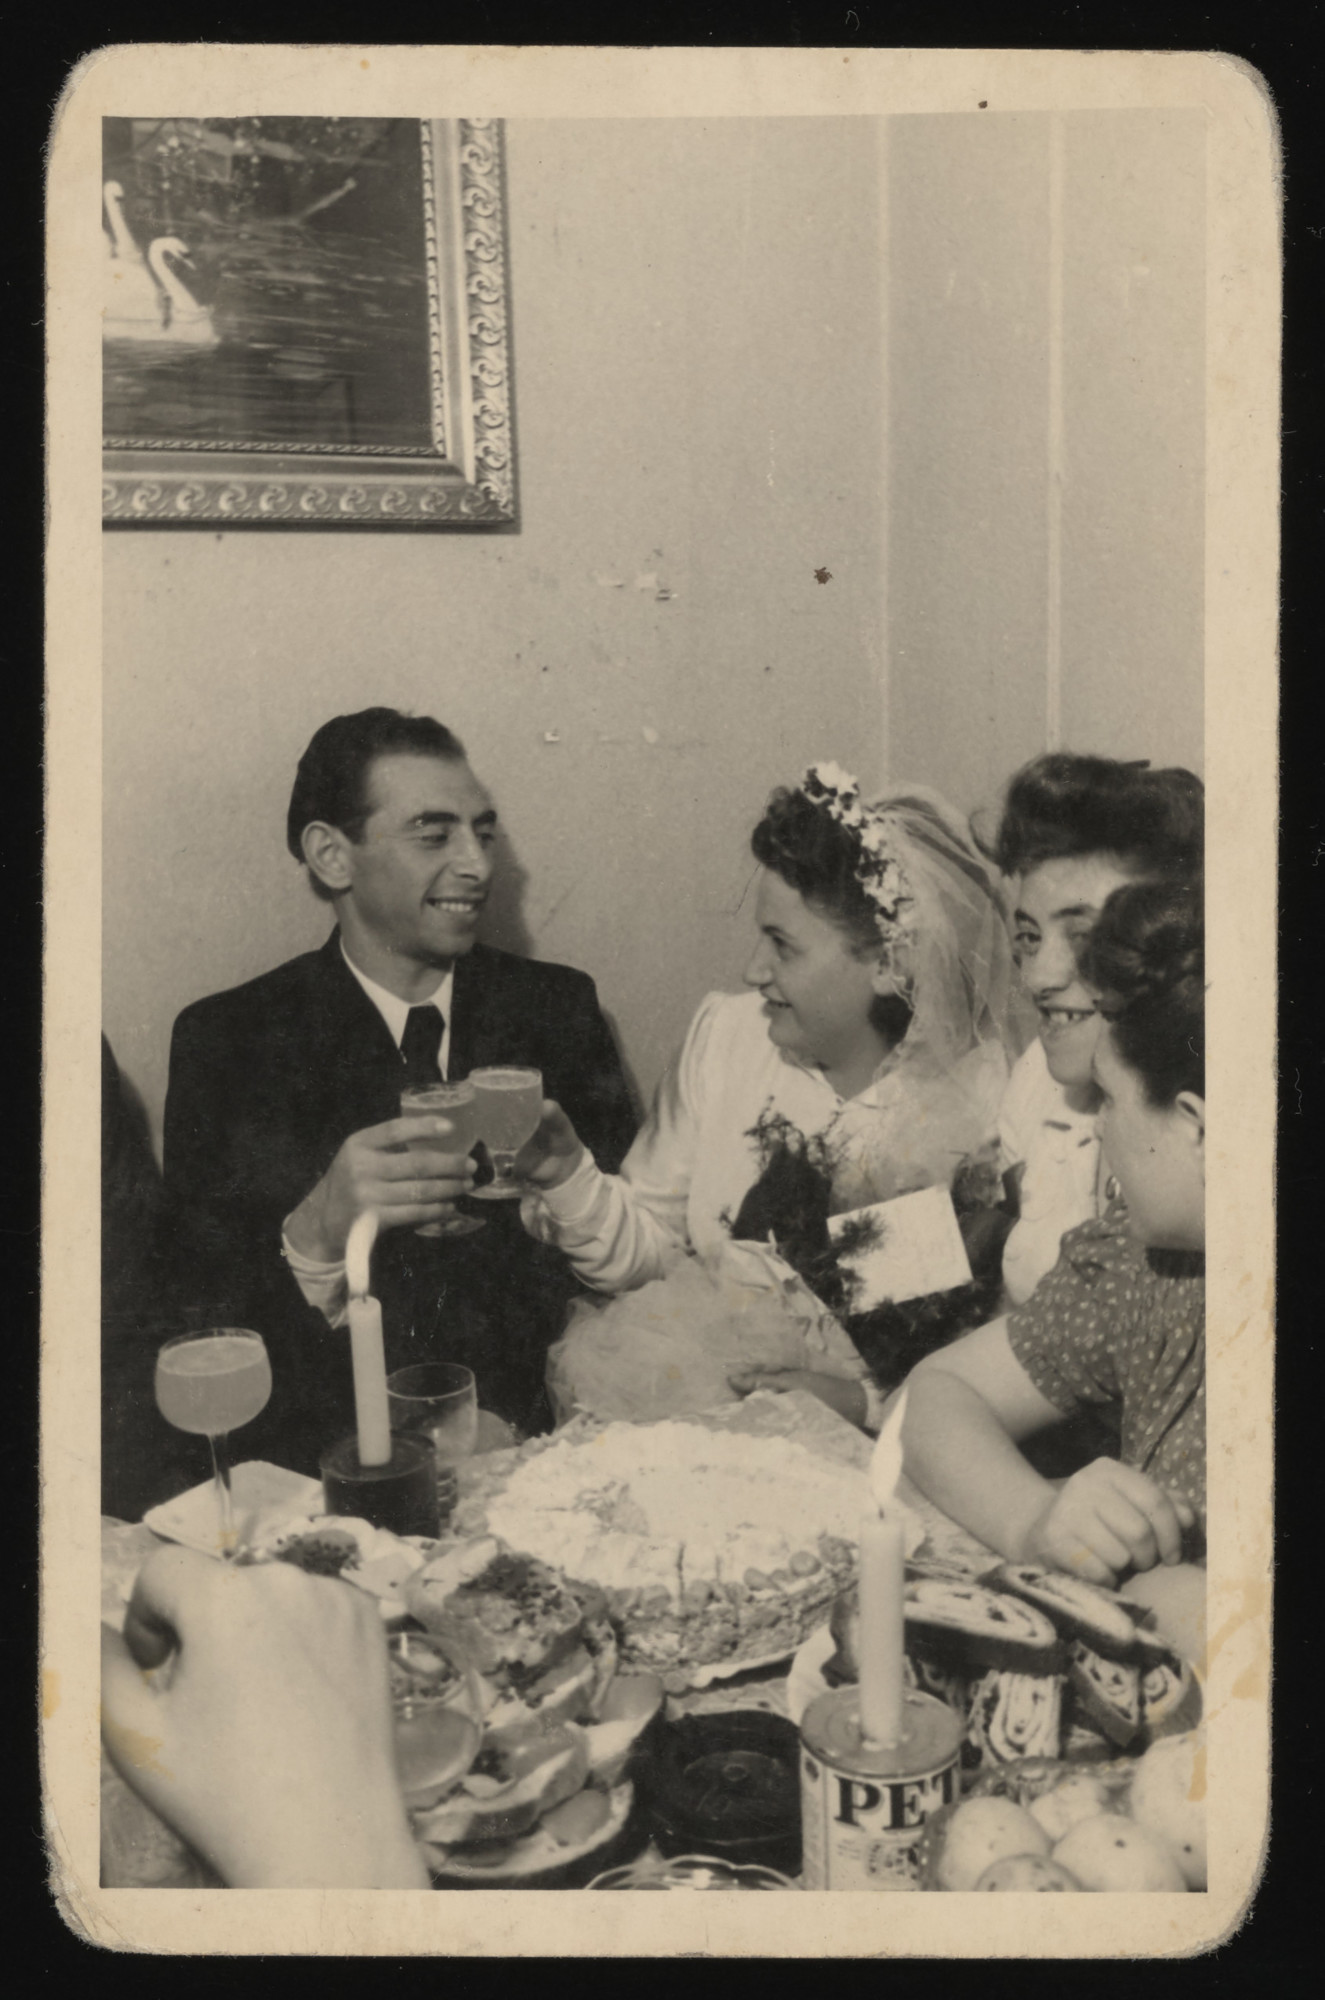 A bride and groom toast one another at a dinner in the Zeilsheim displaced persons camp.   Makeshift candlestick holders fashioned from PET milkcans adorn the table.  The couple's ketuba identifies them as Yaakov Mordechai ben Aaron and Rachel bat Efraim.